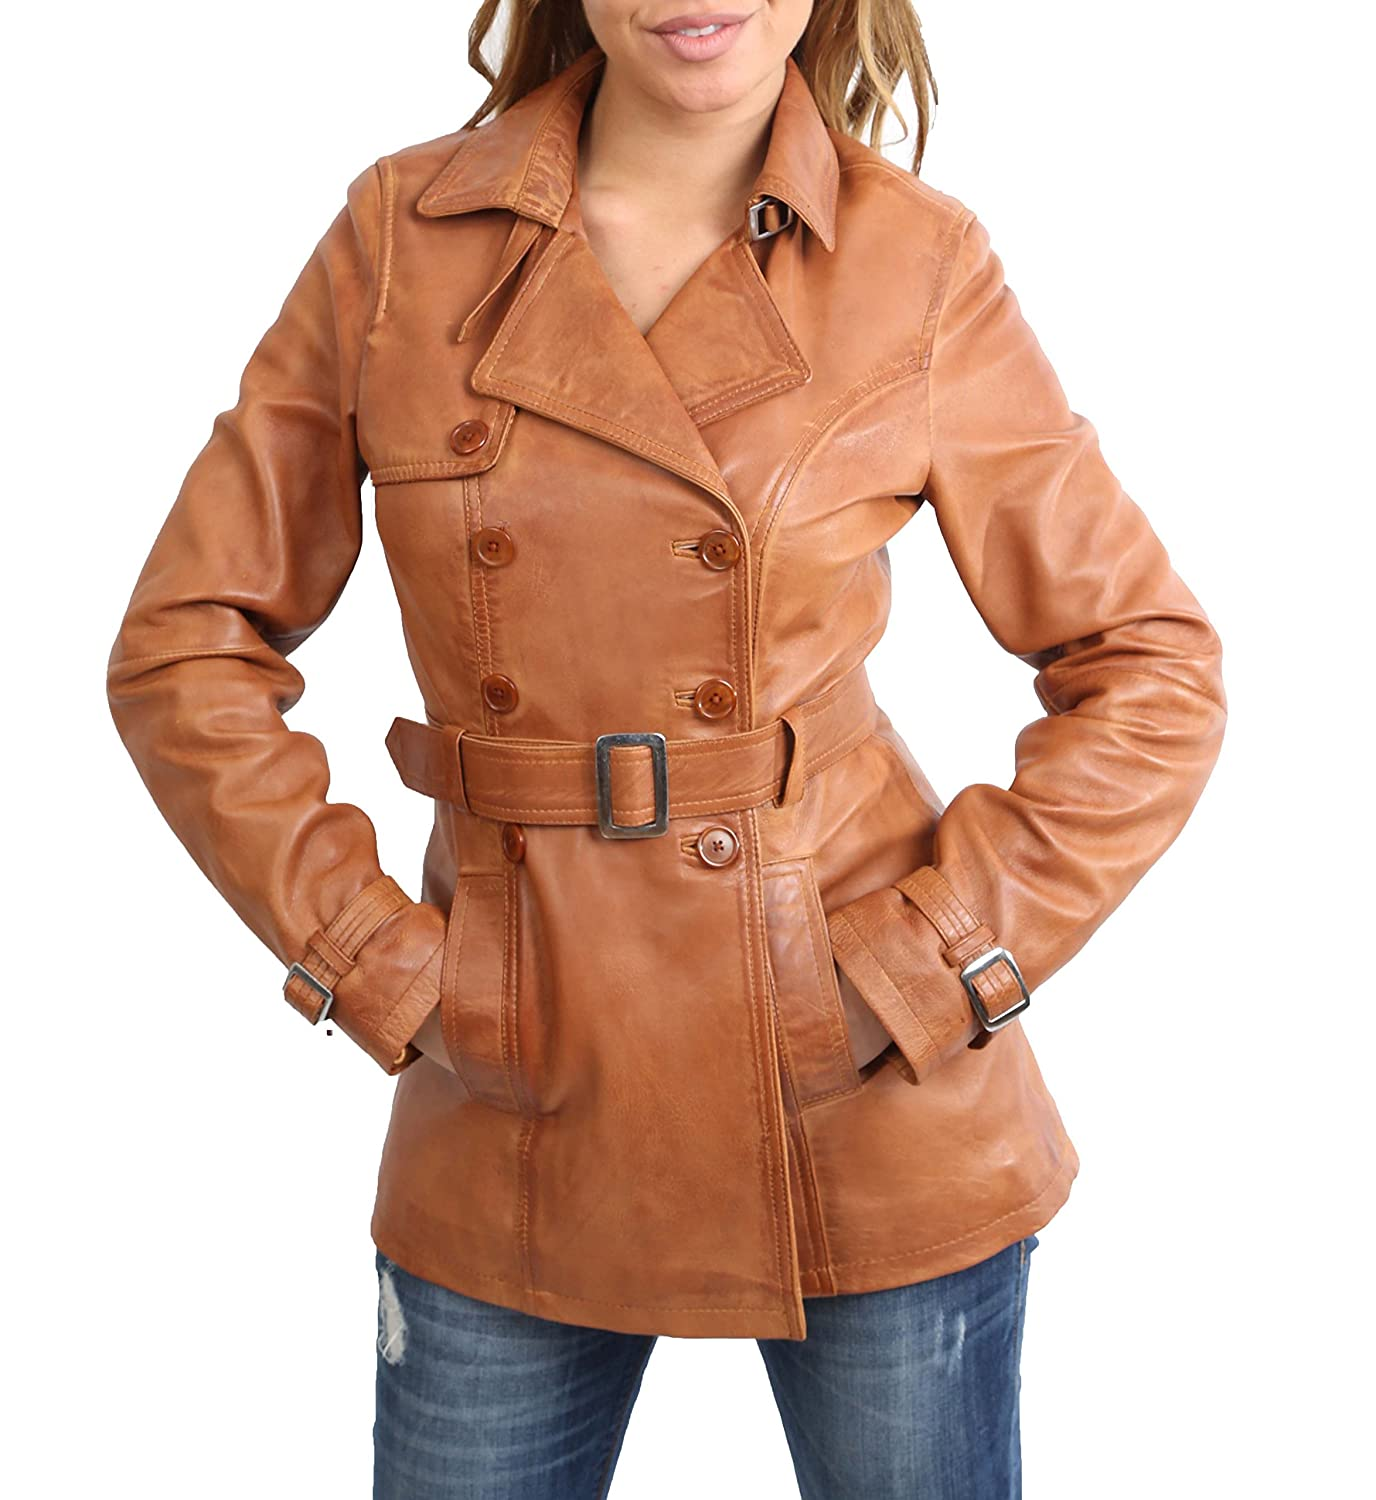 Ladies Genuine Leather Jacket Womens Double Breasted Trench Coat Olivia Tan A1 FASHION GOODS